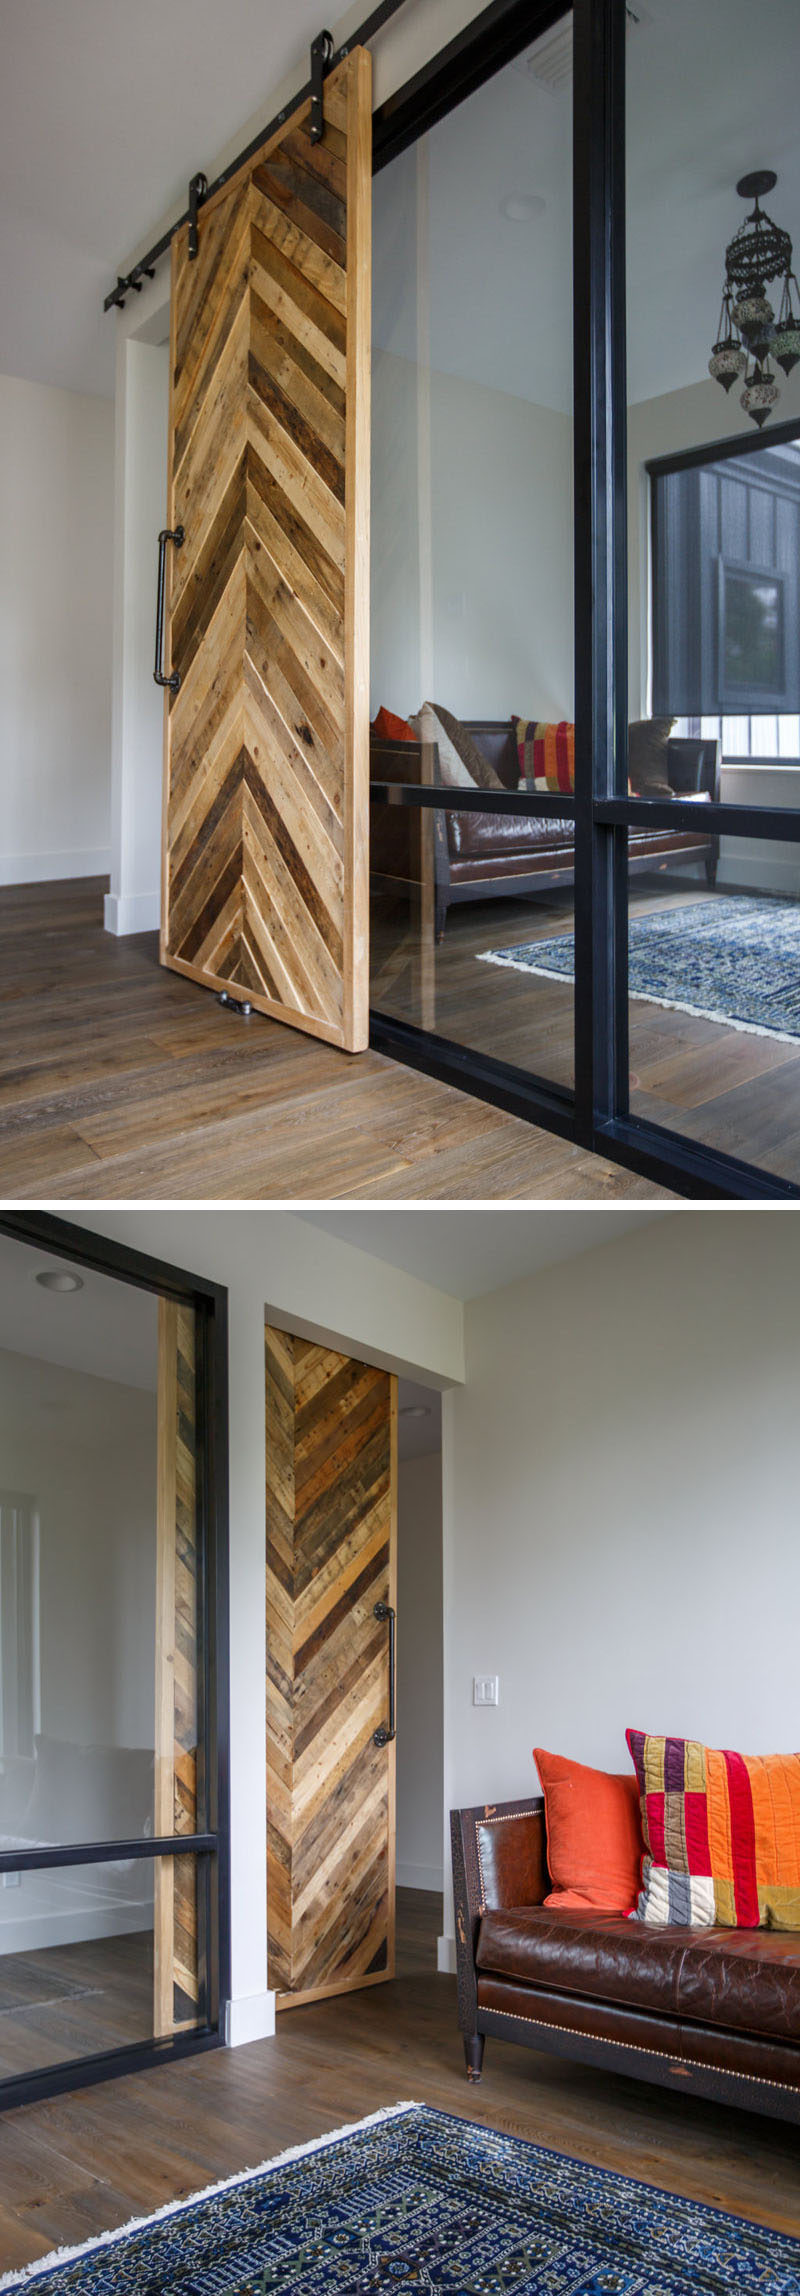 A sliding barn door made from recycled wood provides access to this home office, while natural light from the window flows through a glass wall, allowing the room to feel open to the rest of the house. #HomeOffice #SlidingBarnDoor #WoodDoor #InteriorDesign